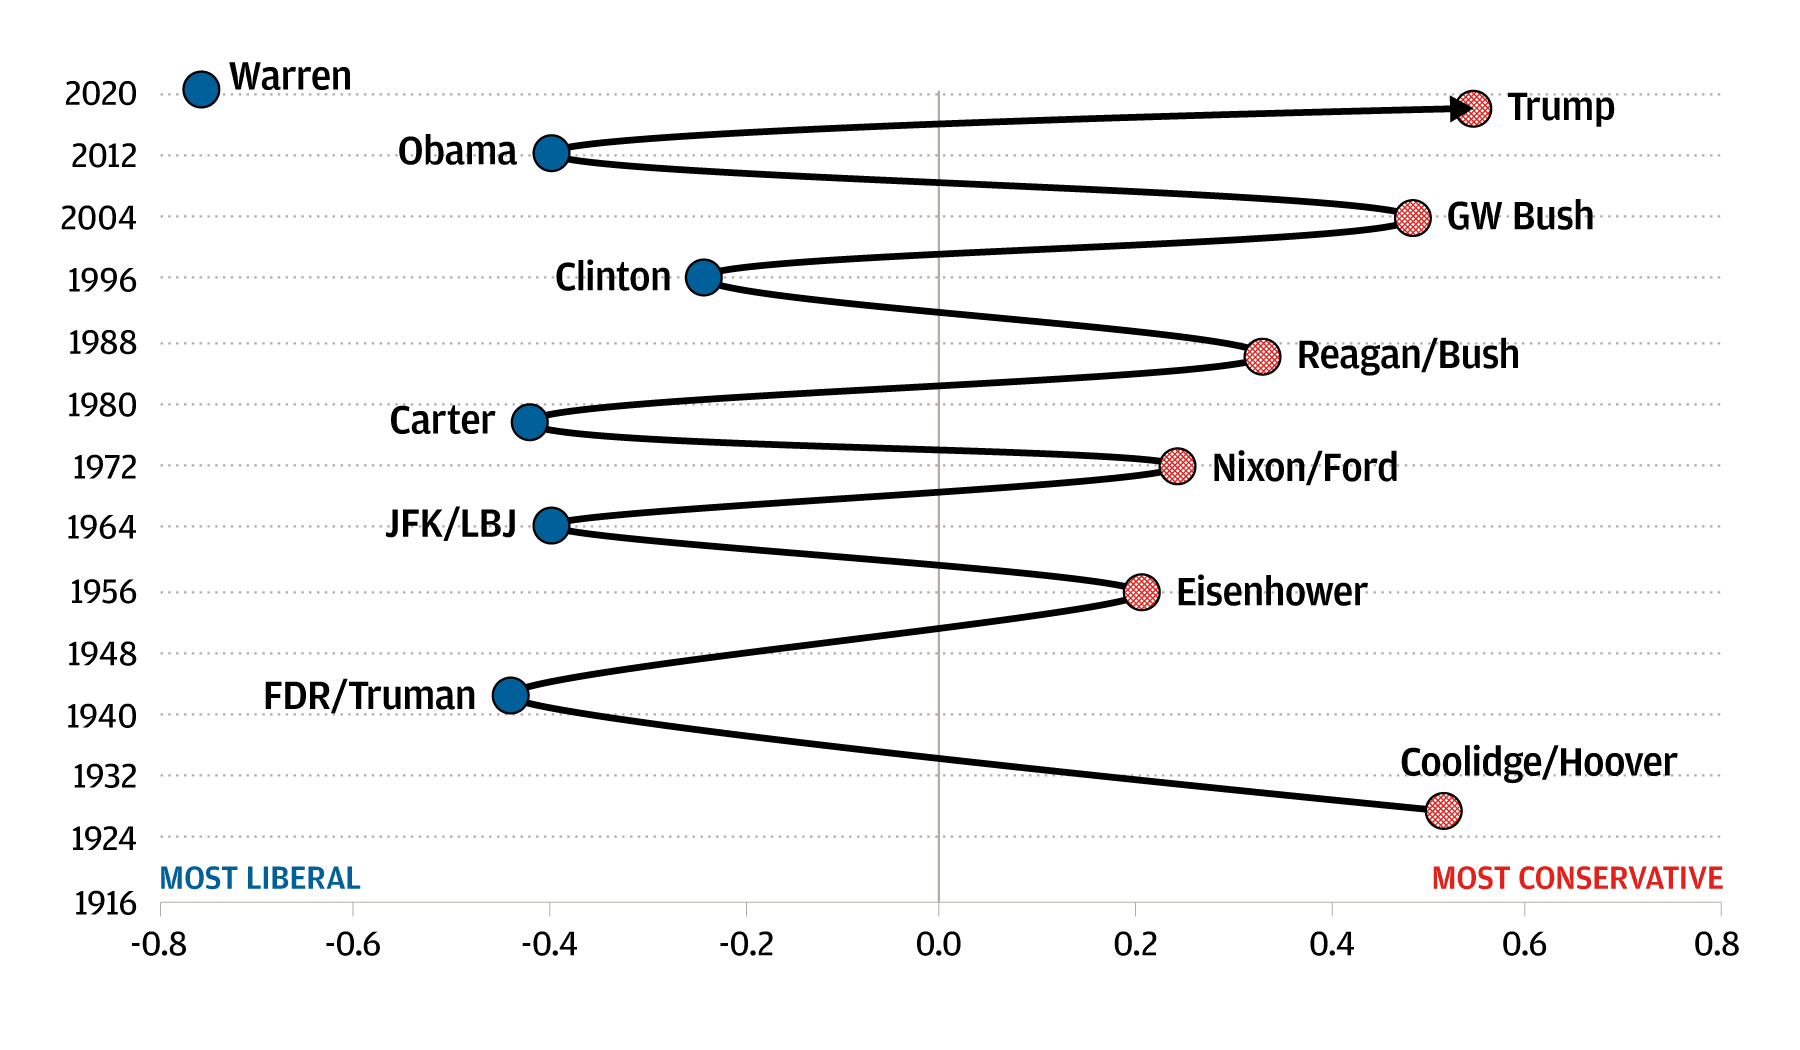 Scatter plot showing the year of different US presidential administrations along the Y axis, and UCLA Voteview Liberal-Conservative scores along the X axis. Liberal-Conservative scores are based on the voting records of presidents and their administration.